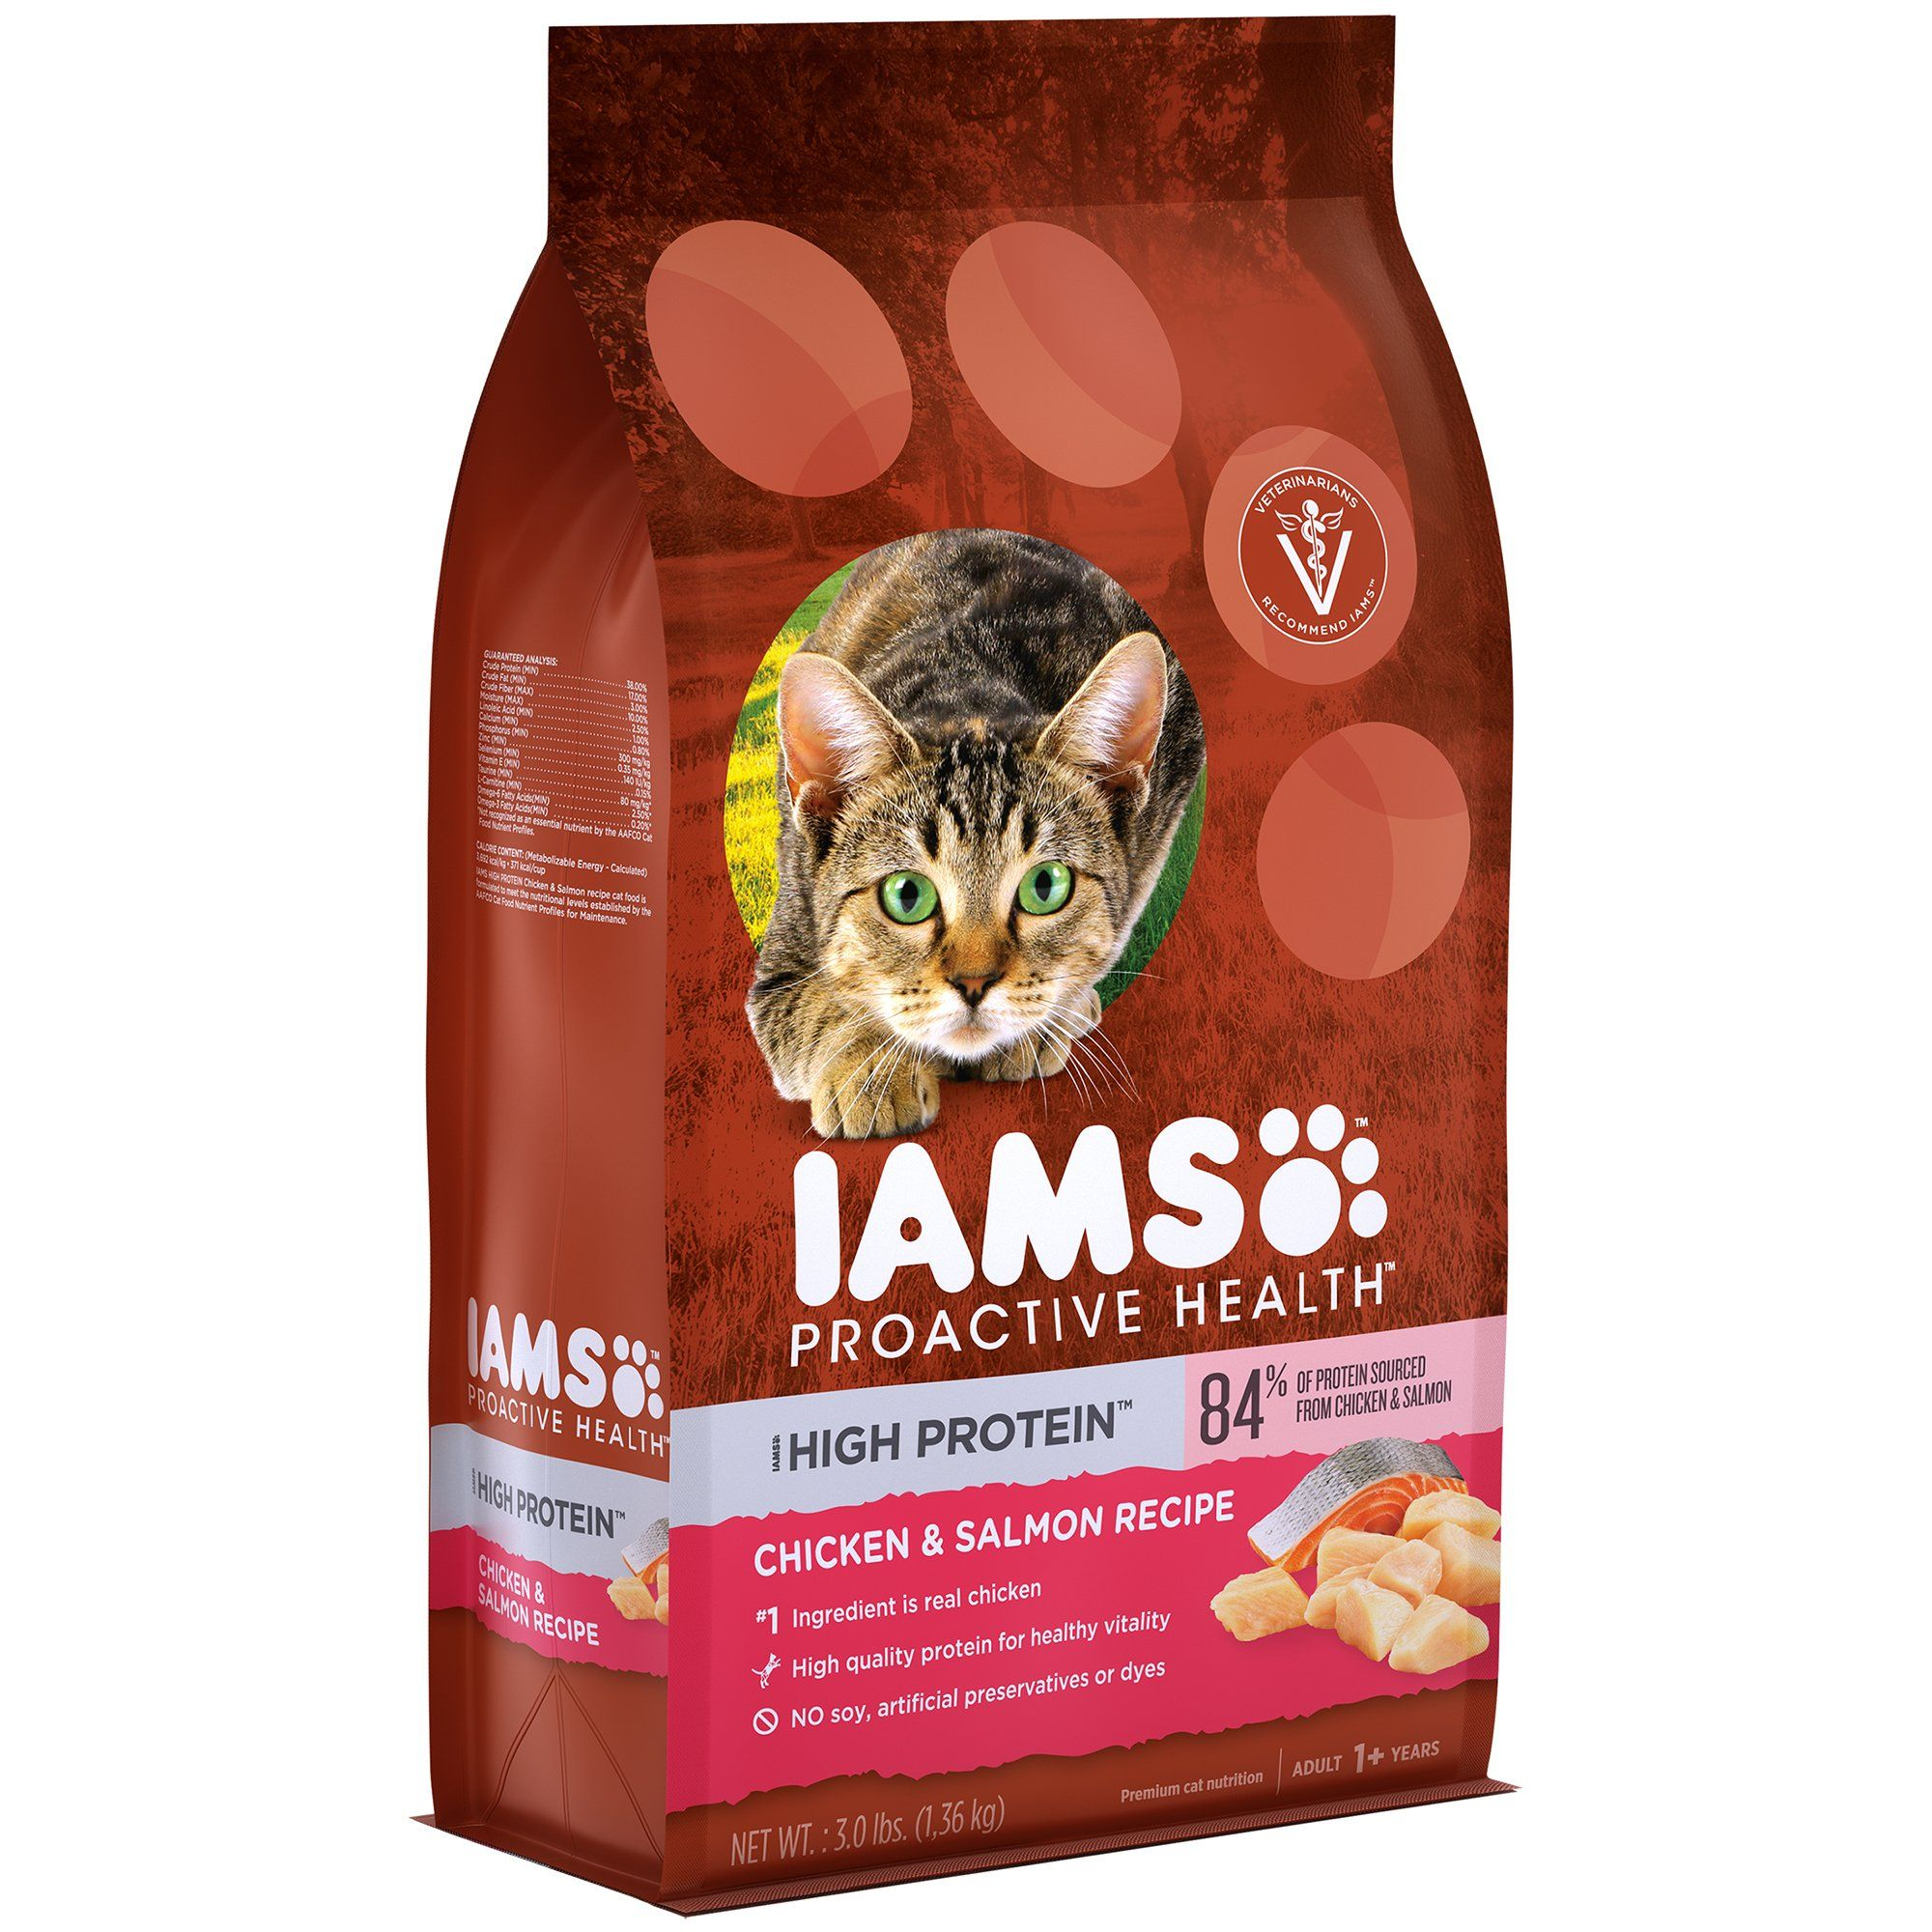 Iams Proactive Health High Protein Adult Dry Cat Food 3 0 Pounds Click Image To Review More Details This Is An Dry Cat Food High Protein Cat Food